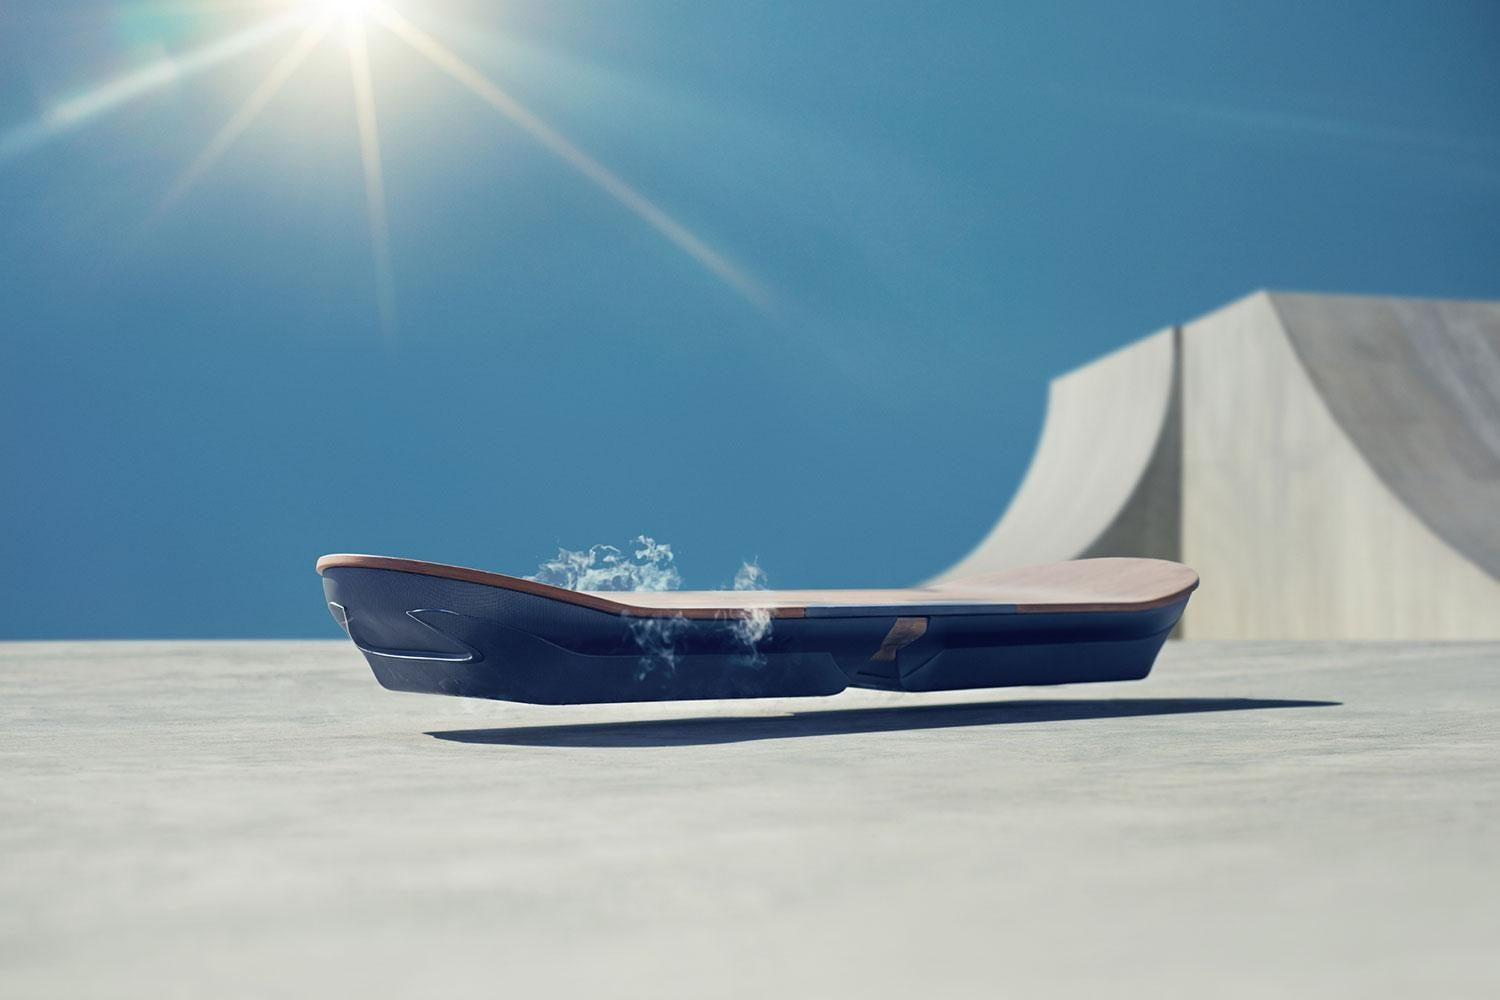 lexus hoverboard news pictures video slide hoverpark 2